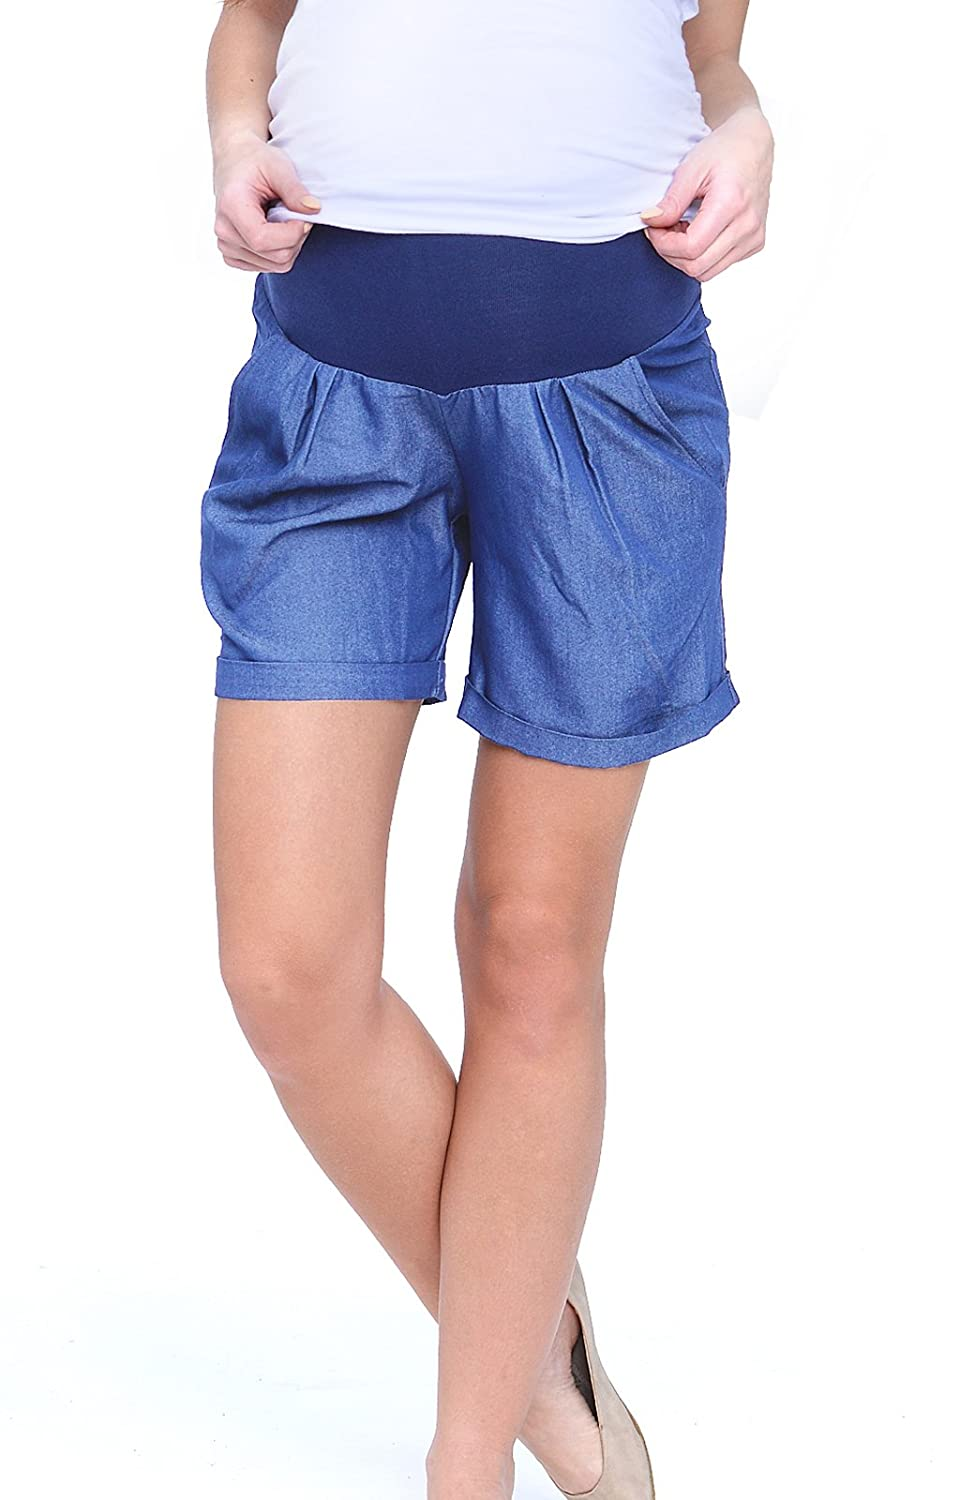 Mija - Maternity Shorts Pants Trousers With Over Bump Panel 4074